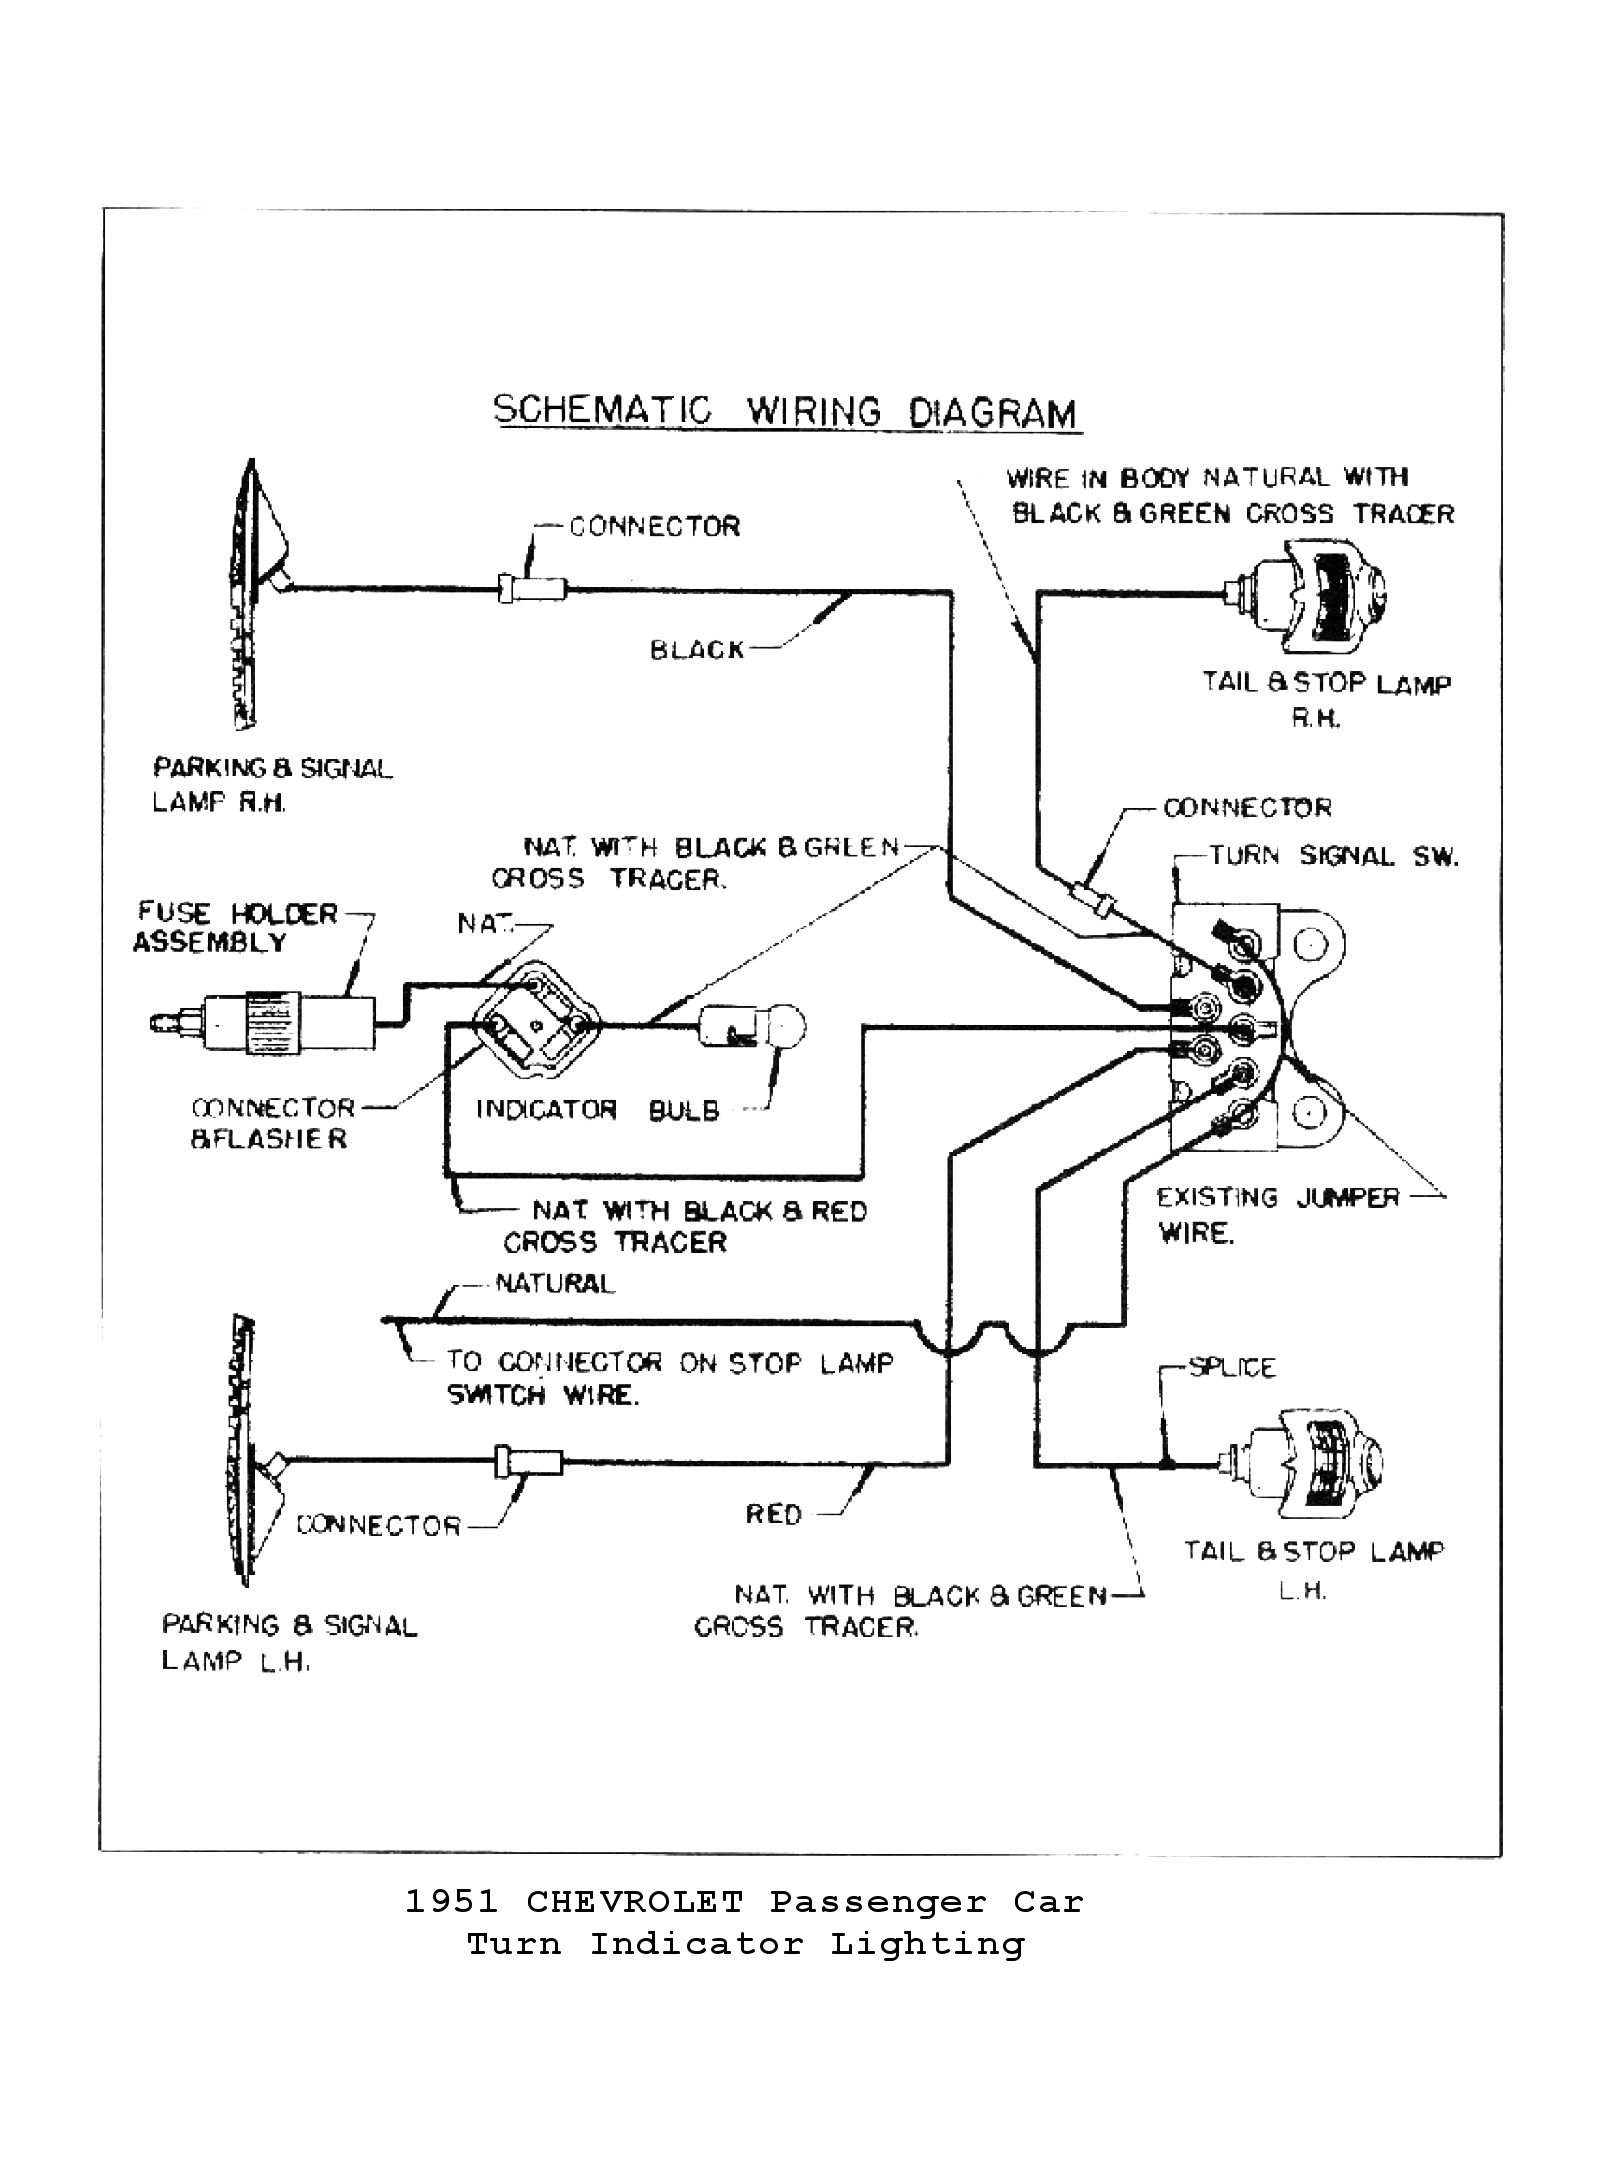 5152turnsignals chevy wiring diagrams 1957 Ford Wiring Diagram at fashall.co